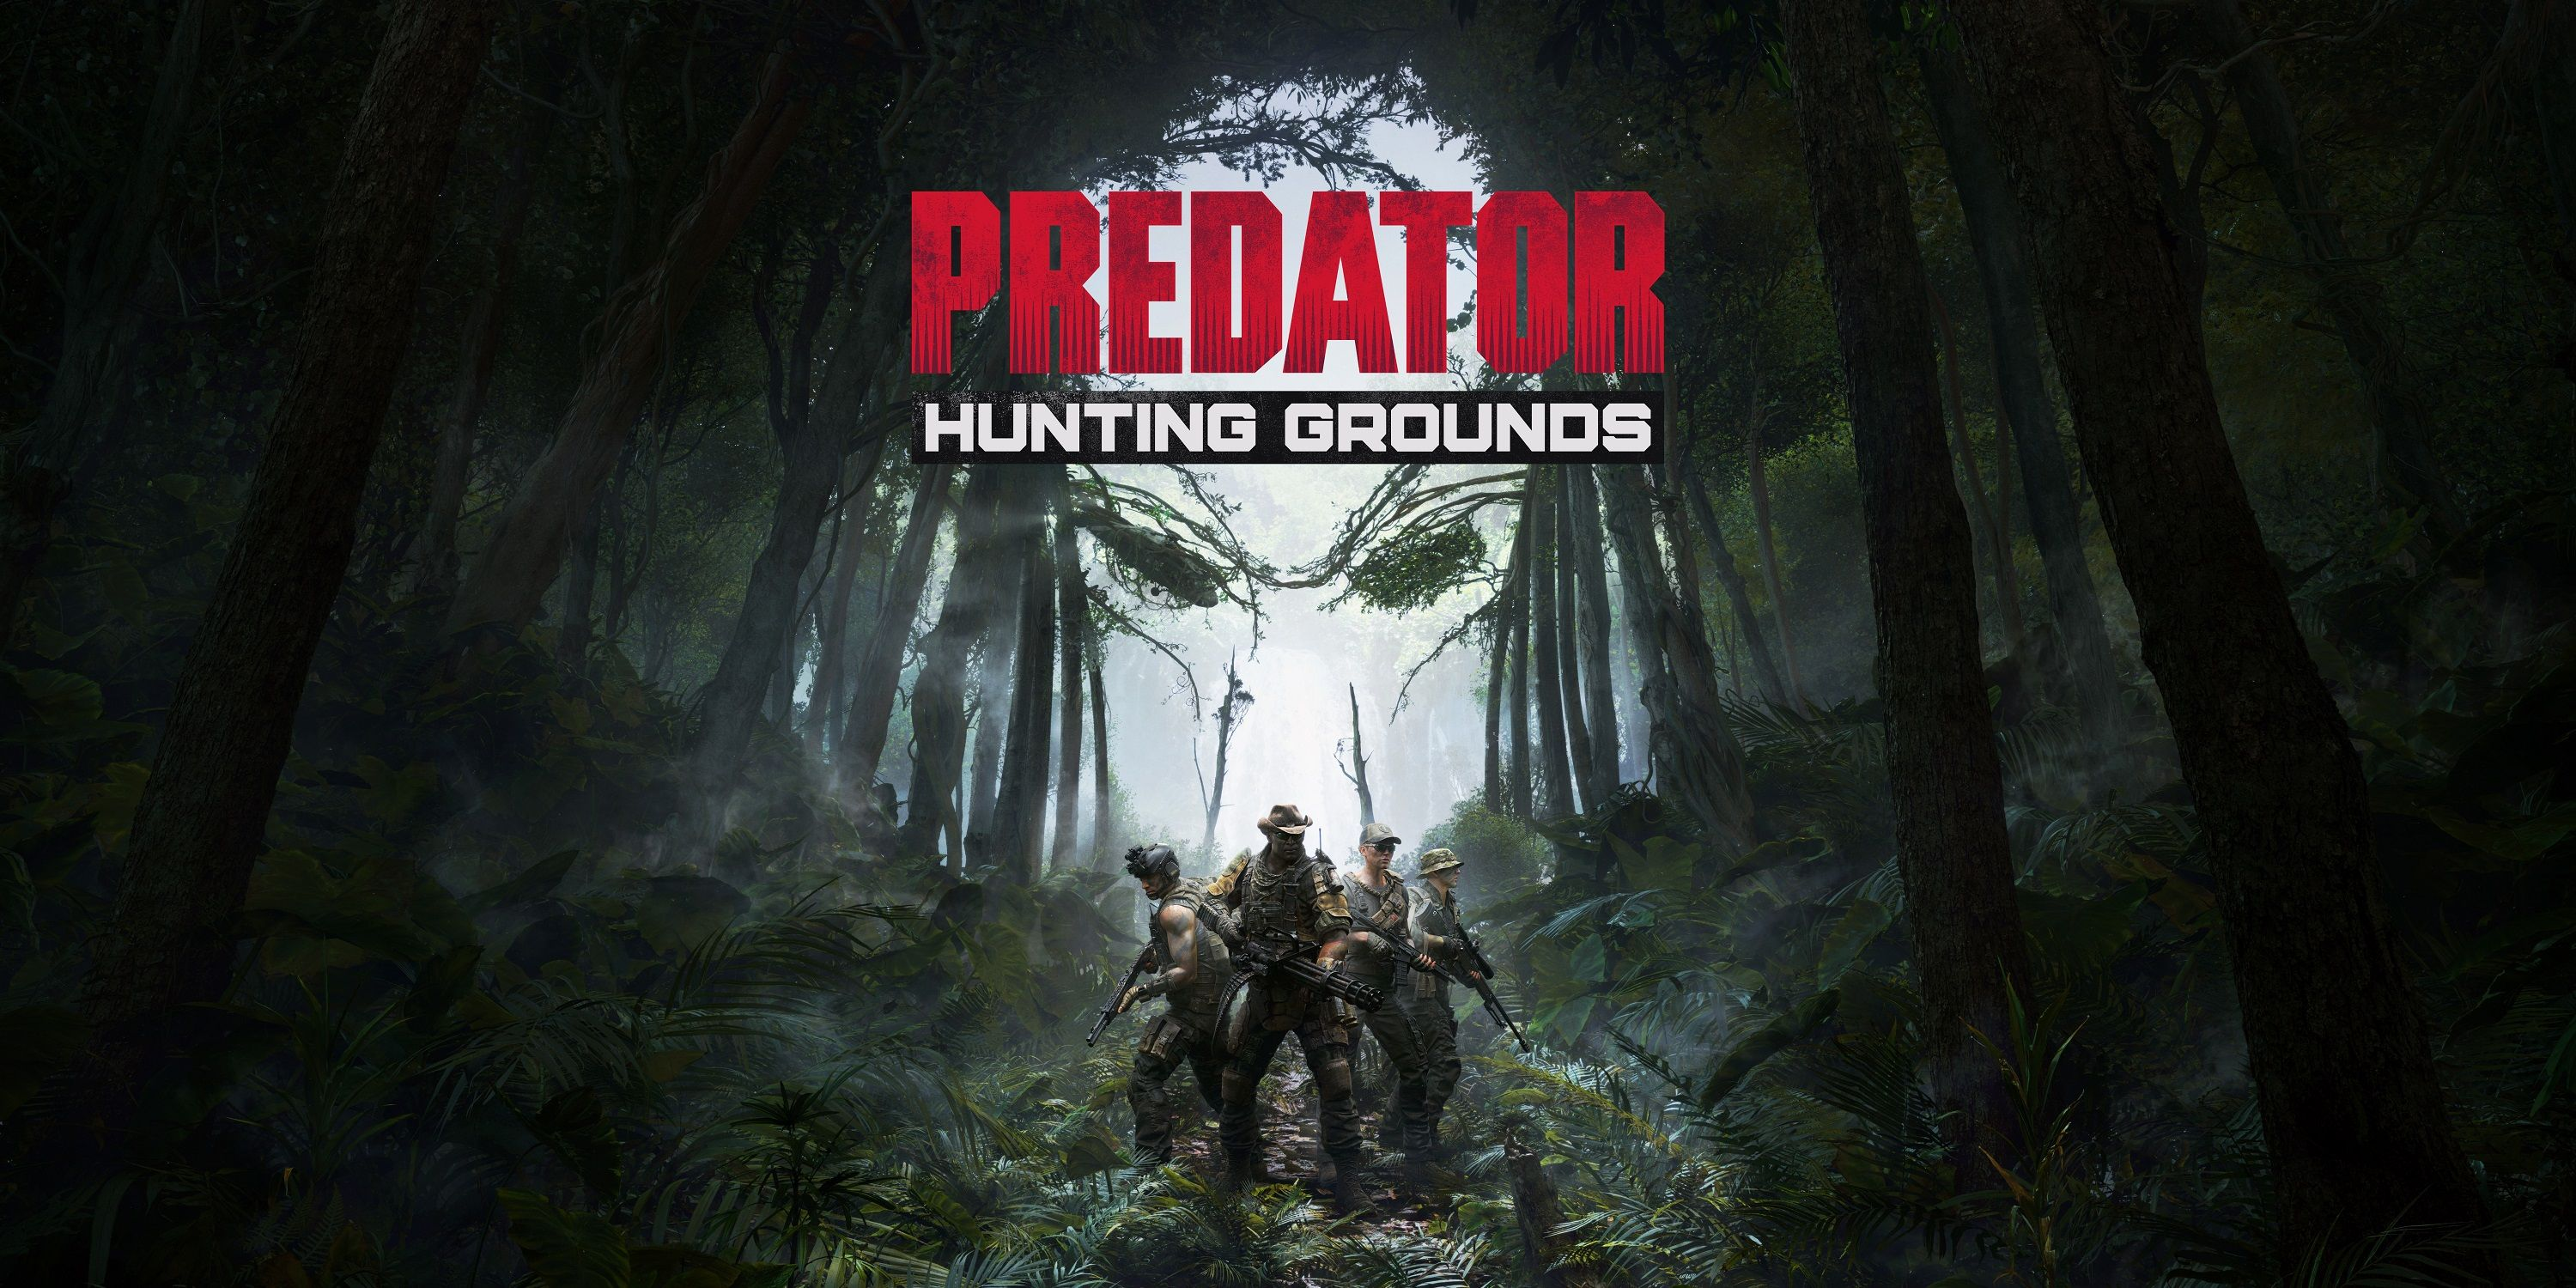 Predator Hunting Grounds Key Art - Predator: Hunting Grounds Review